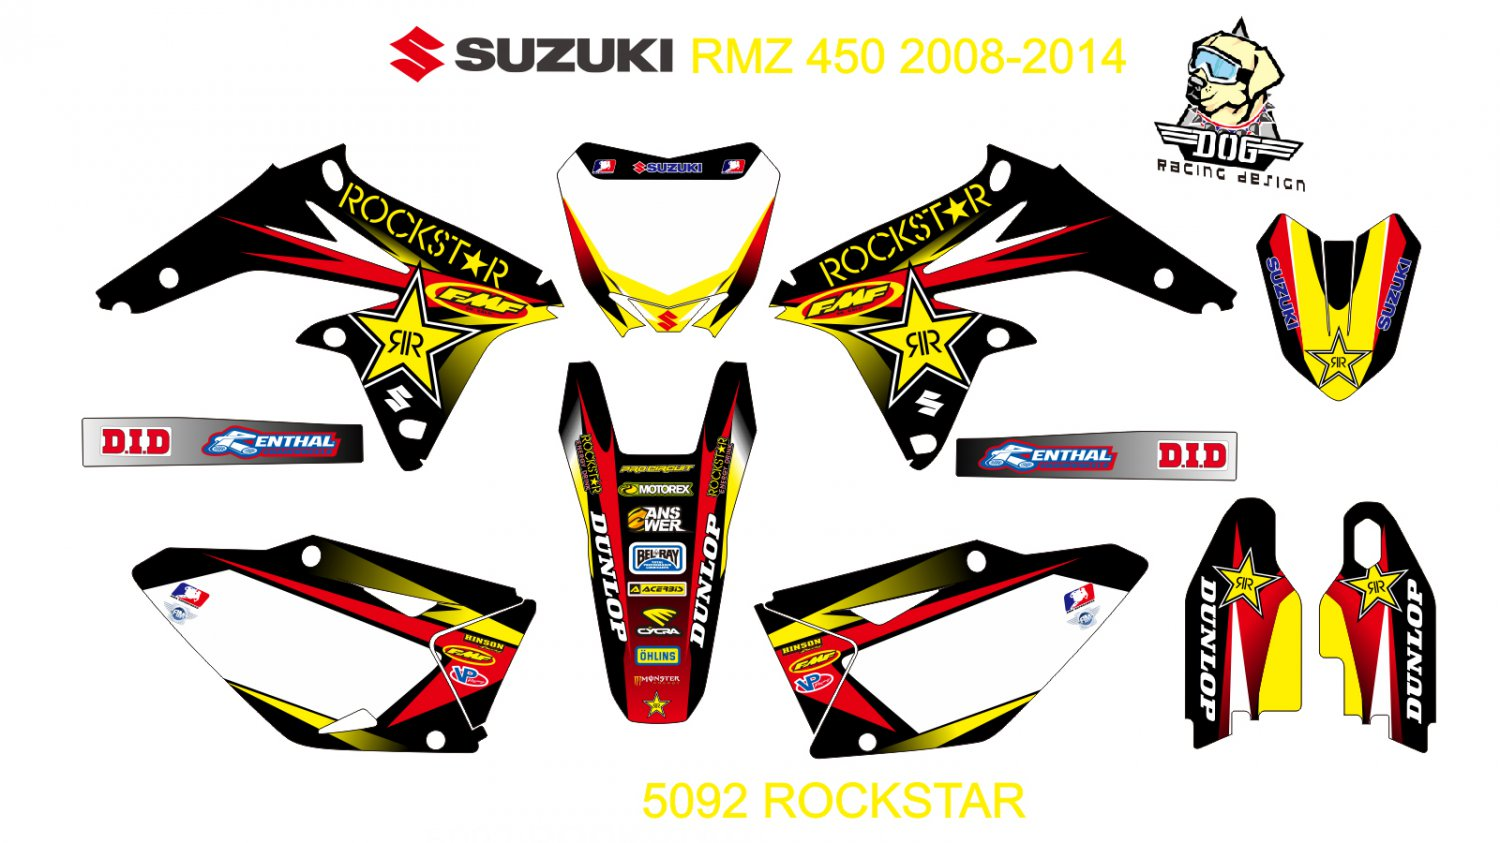 SUZUKI RMZ 450 2008-2014 GRAPHIC DECAL KIT CODE.5092